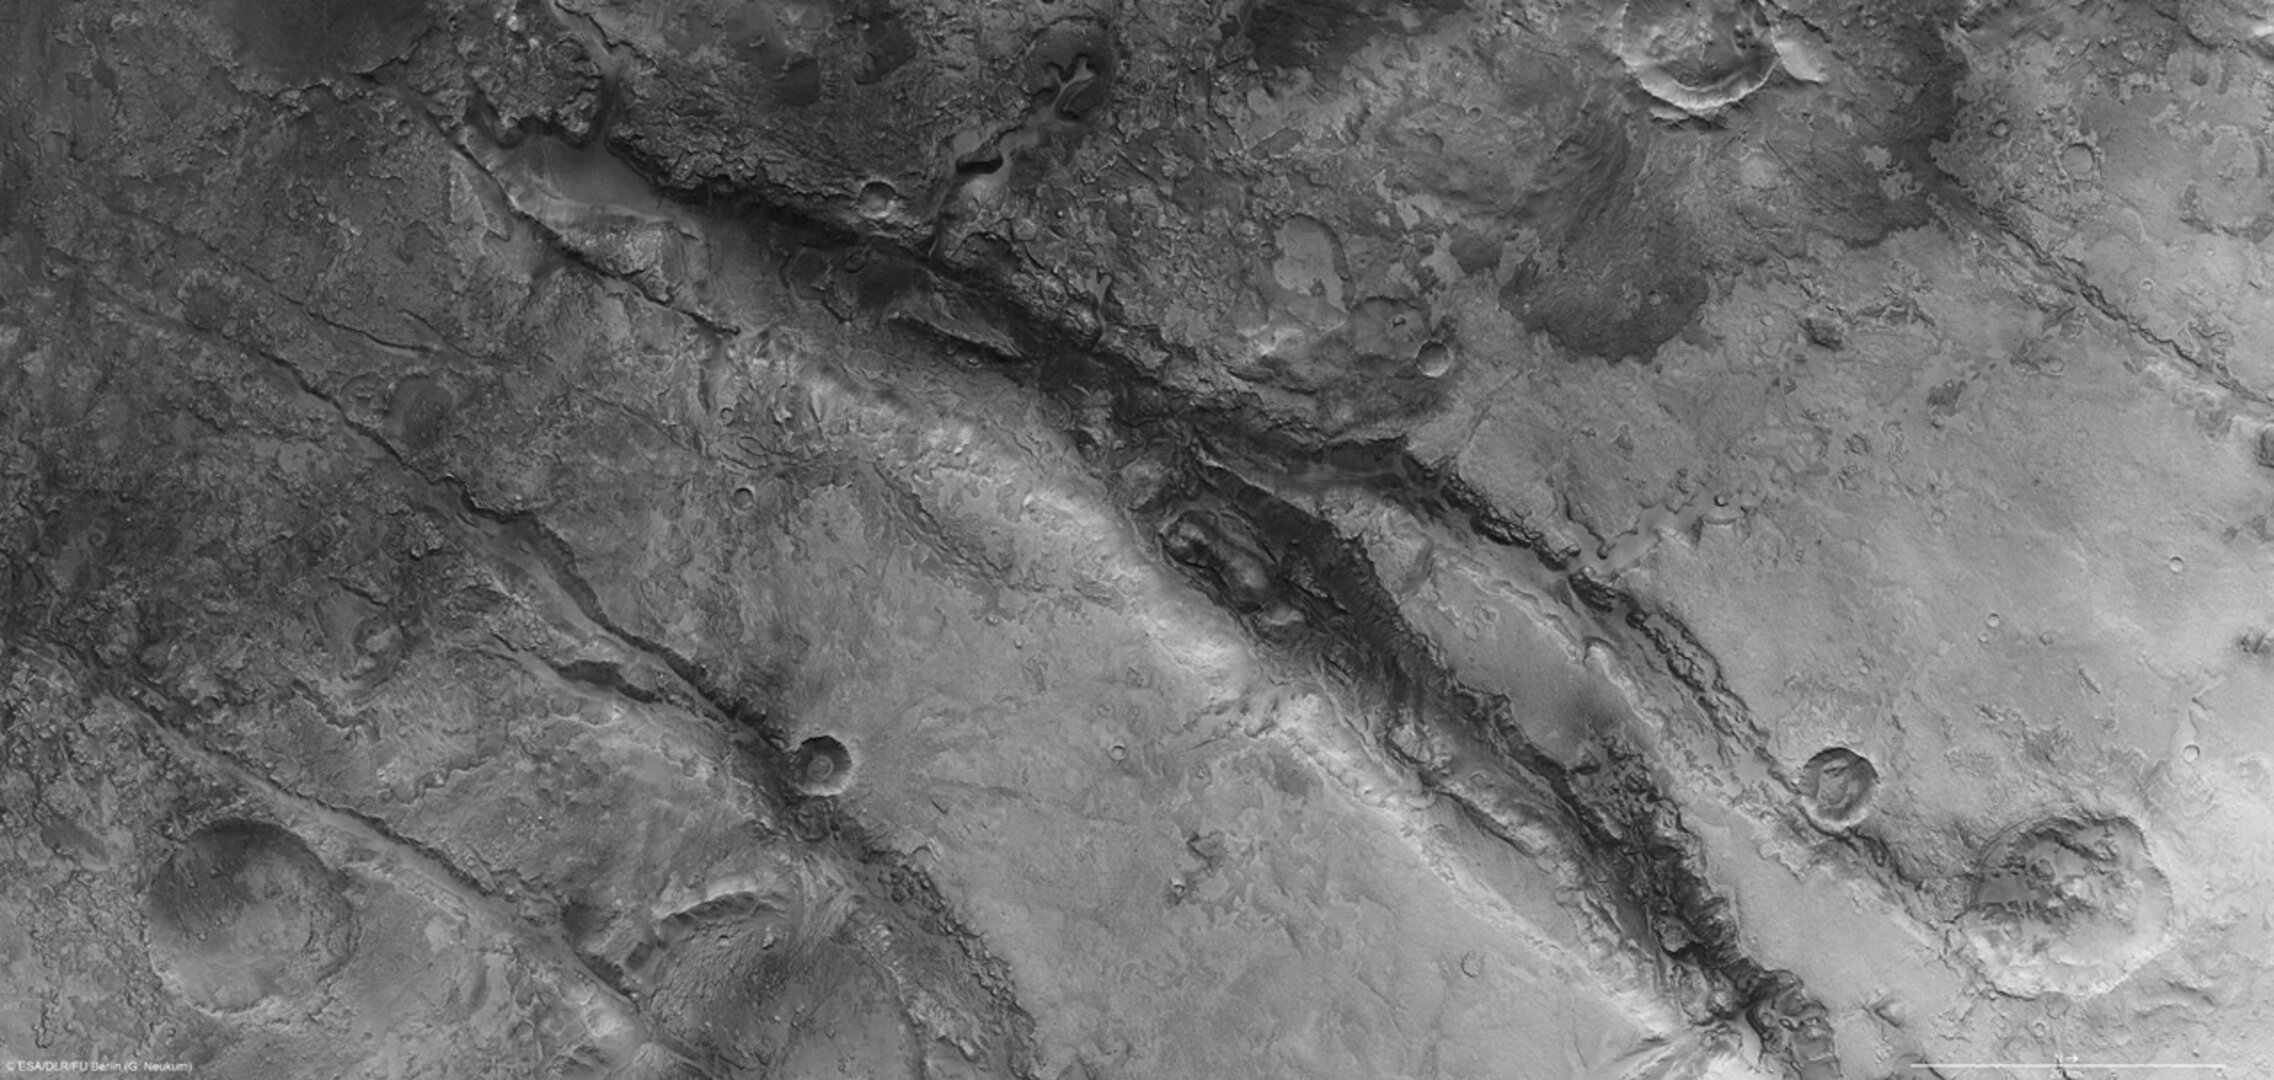 Nili Fossae in high resolution